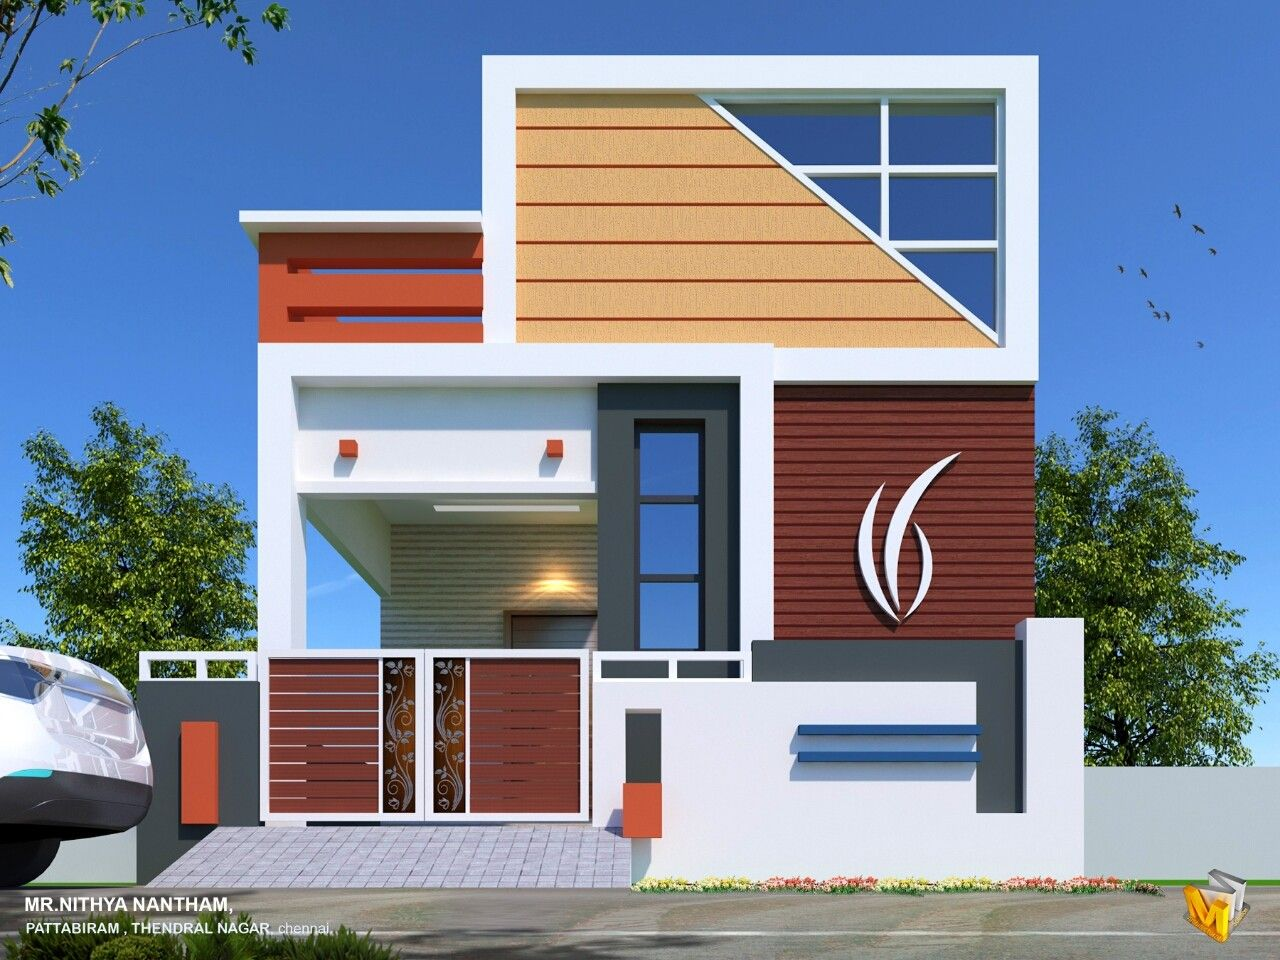 House for sale in saravanampatti coimbatore design independent elevation also rh pinterest